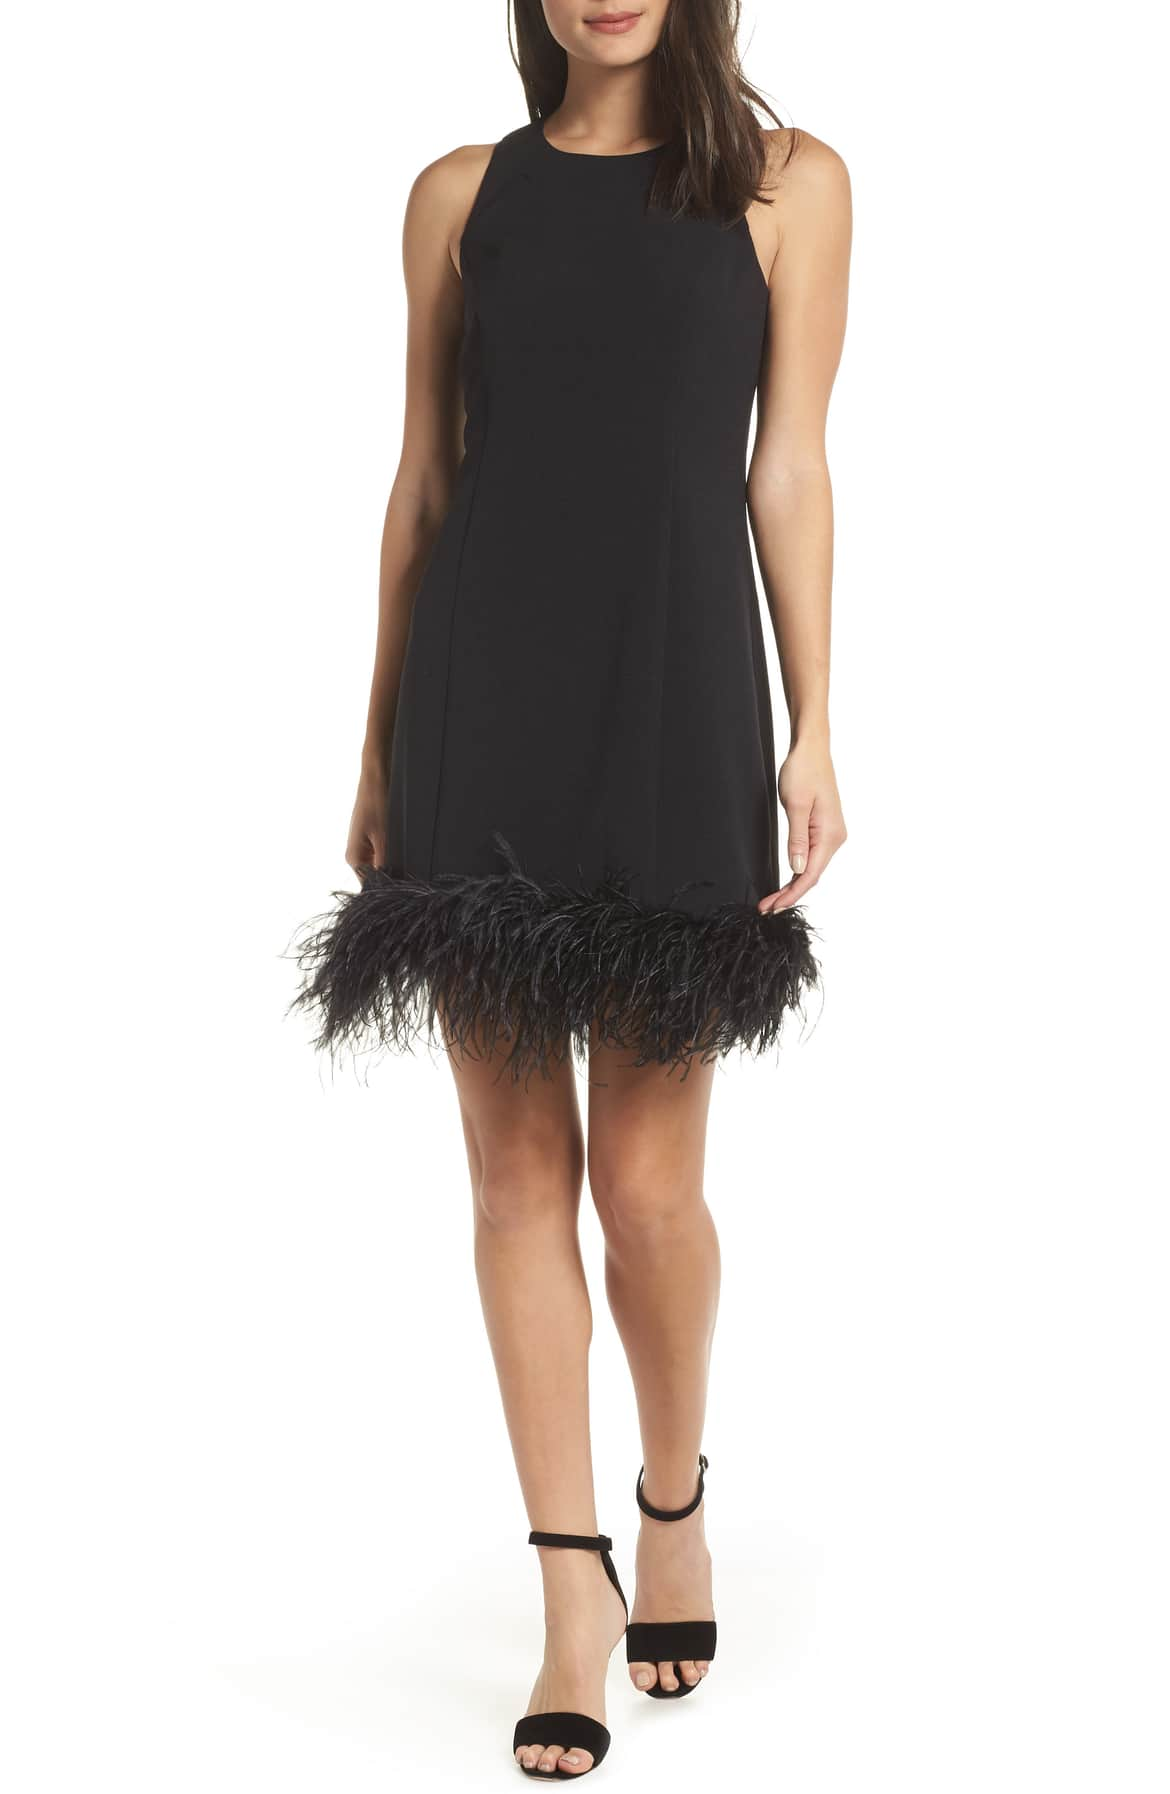 <p>Don't disappoint your party people—arrive in your finest feathers wearing this statement sheath with a hem of ostrich plumes. $159. (Image: Nordstrom){&nbsp;}</p><p></p>